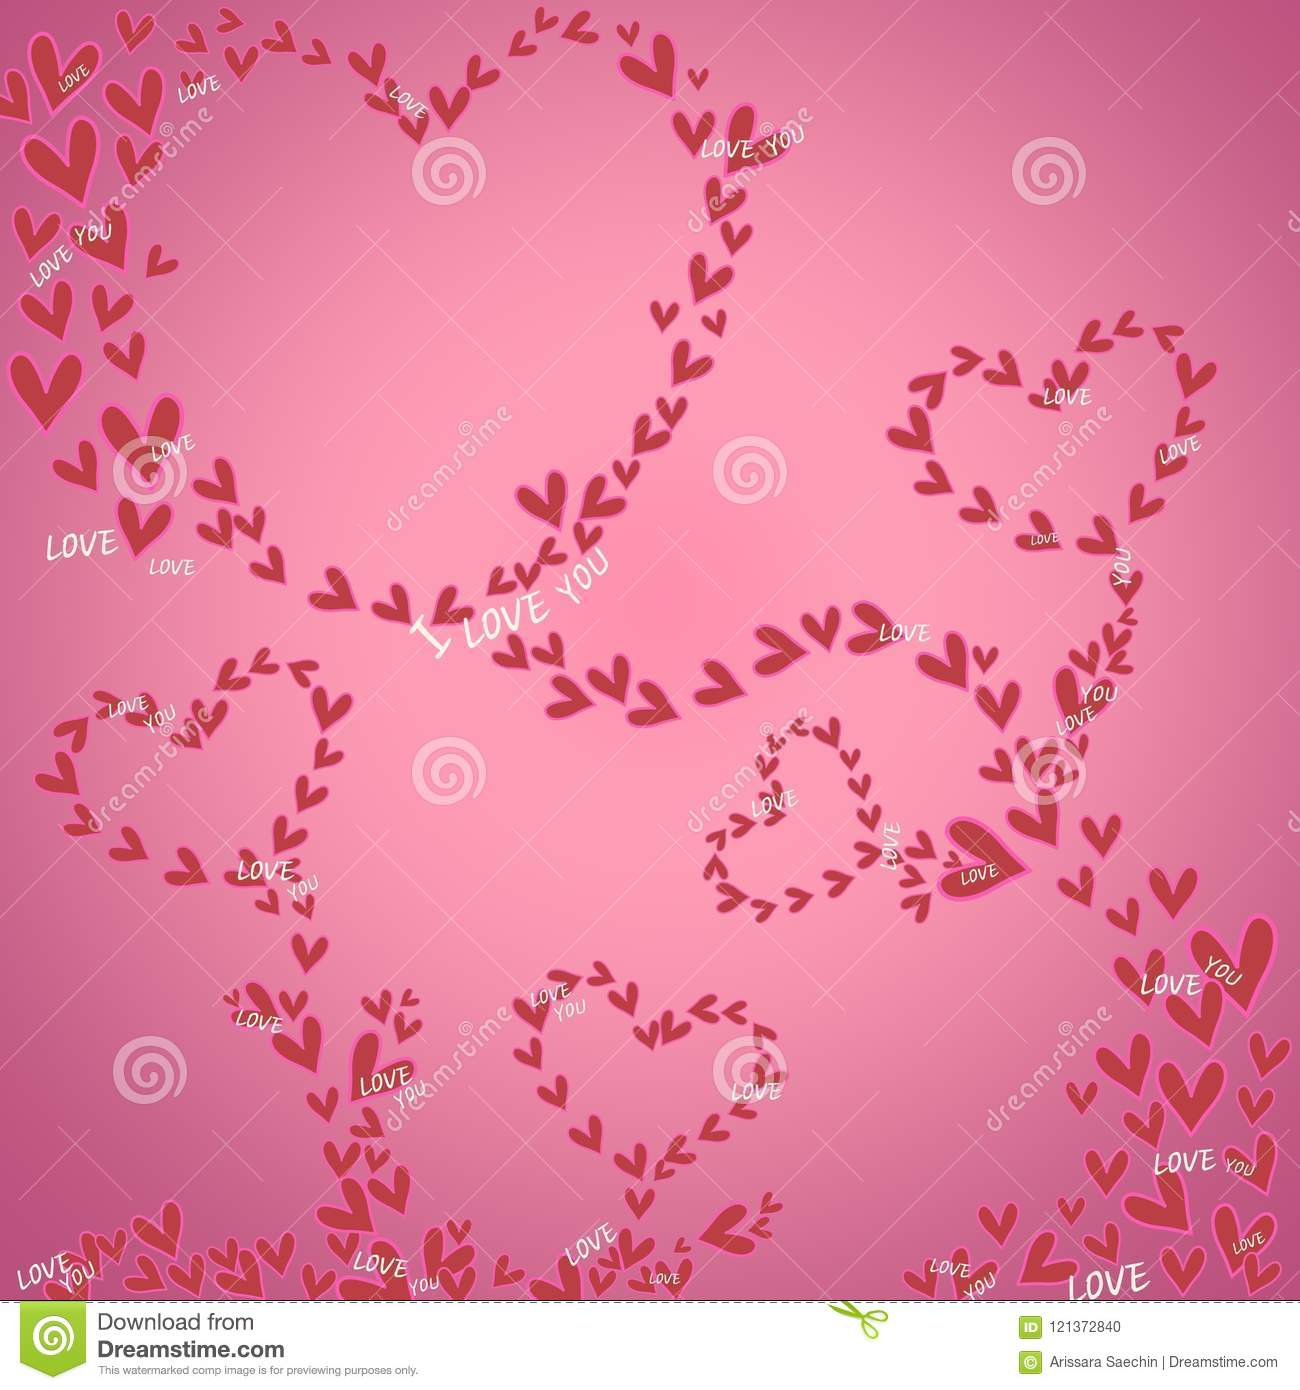 Mini Heart With Pink On Background For Banner Valentine Day Design Love Concept Greeting Card Postcard Wedding Invitation